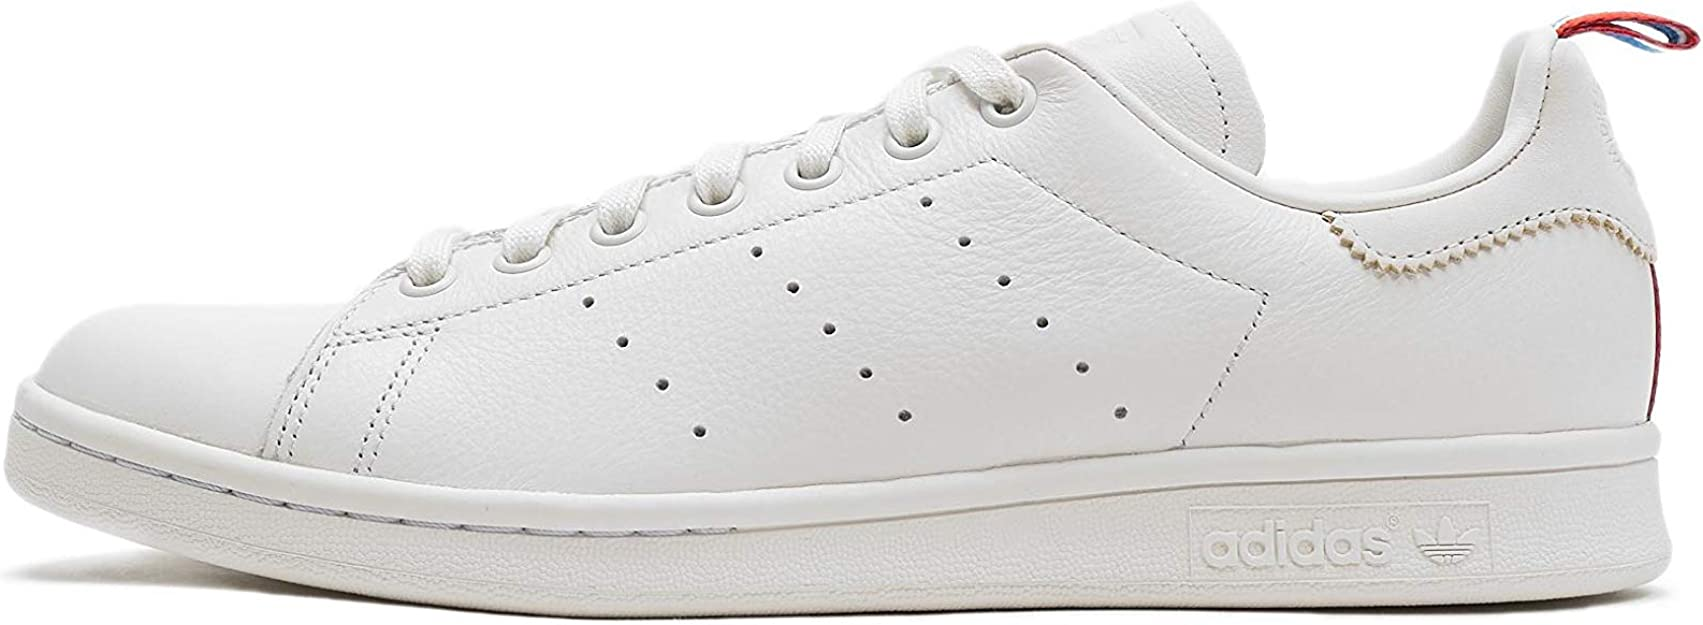 adidas Stan Smith, Chaussures de Gymnastique Homme